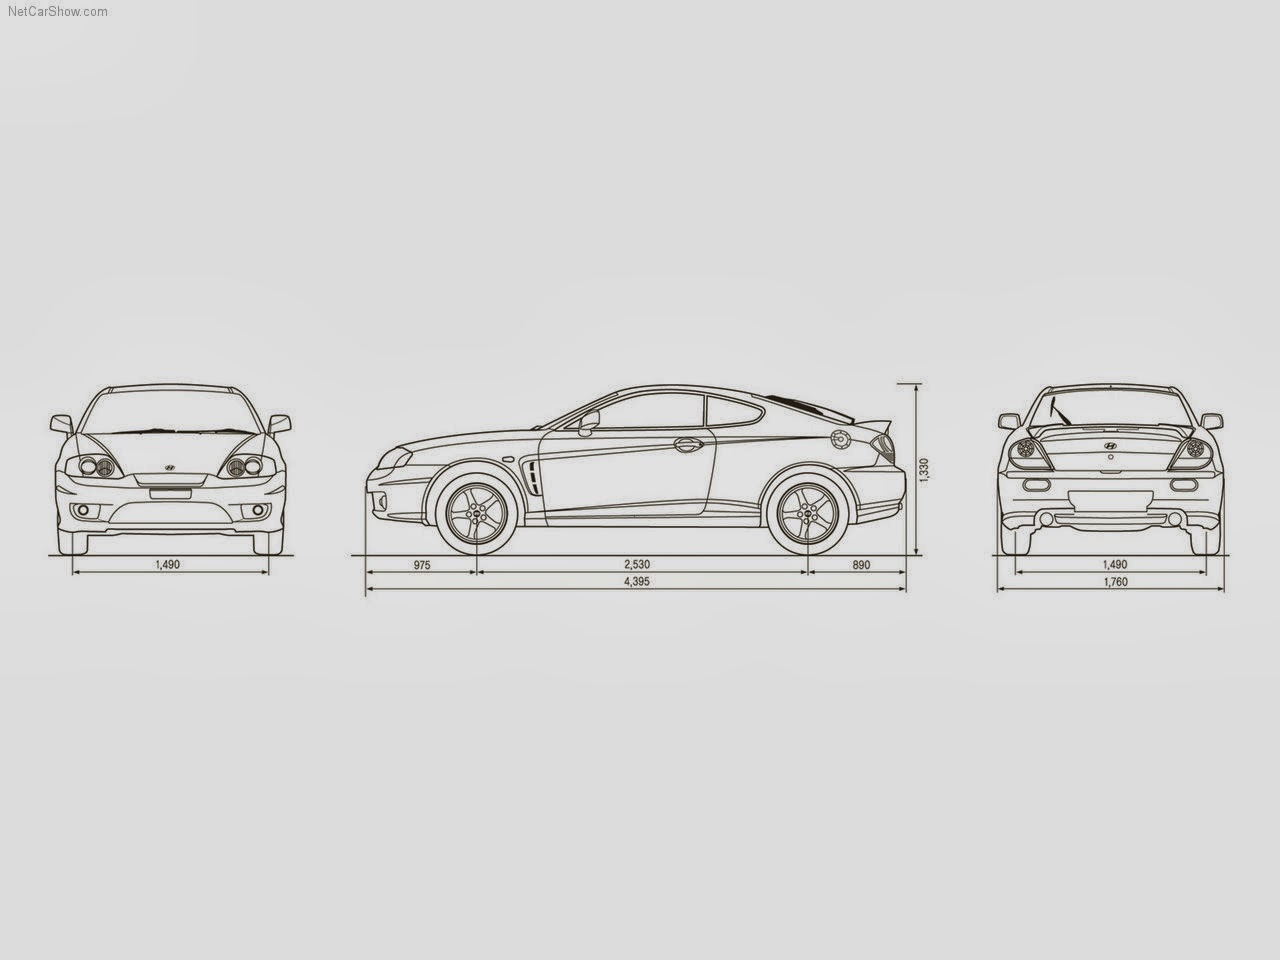 kr_coupe_parts: collection of features on Hyundai Coupe GK